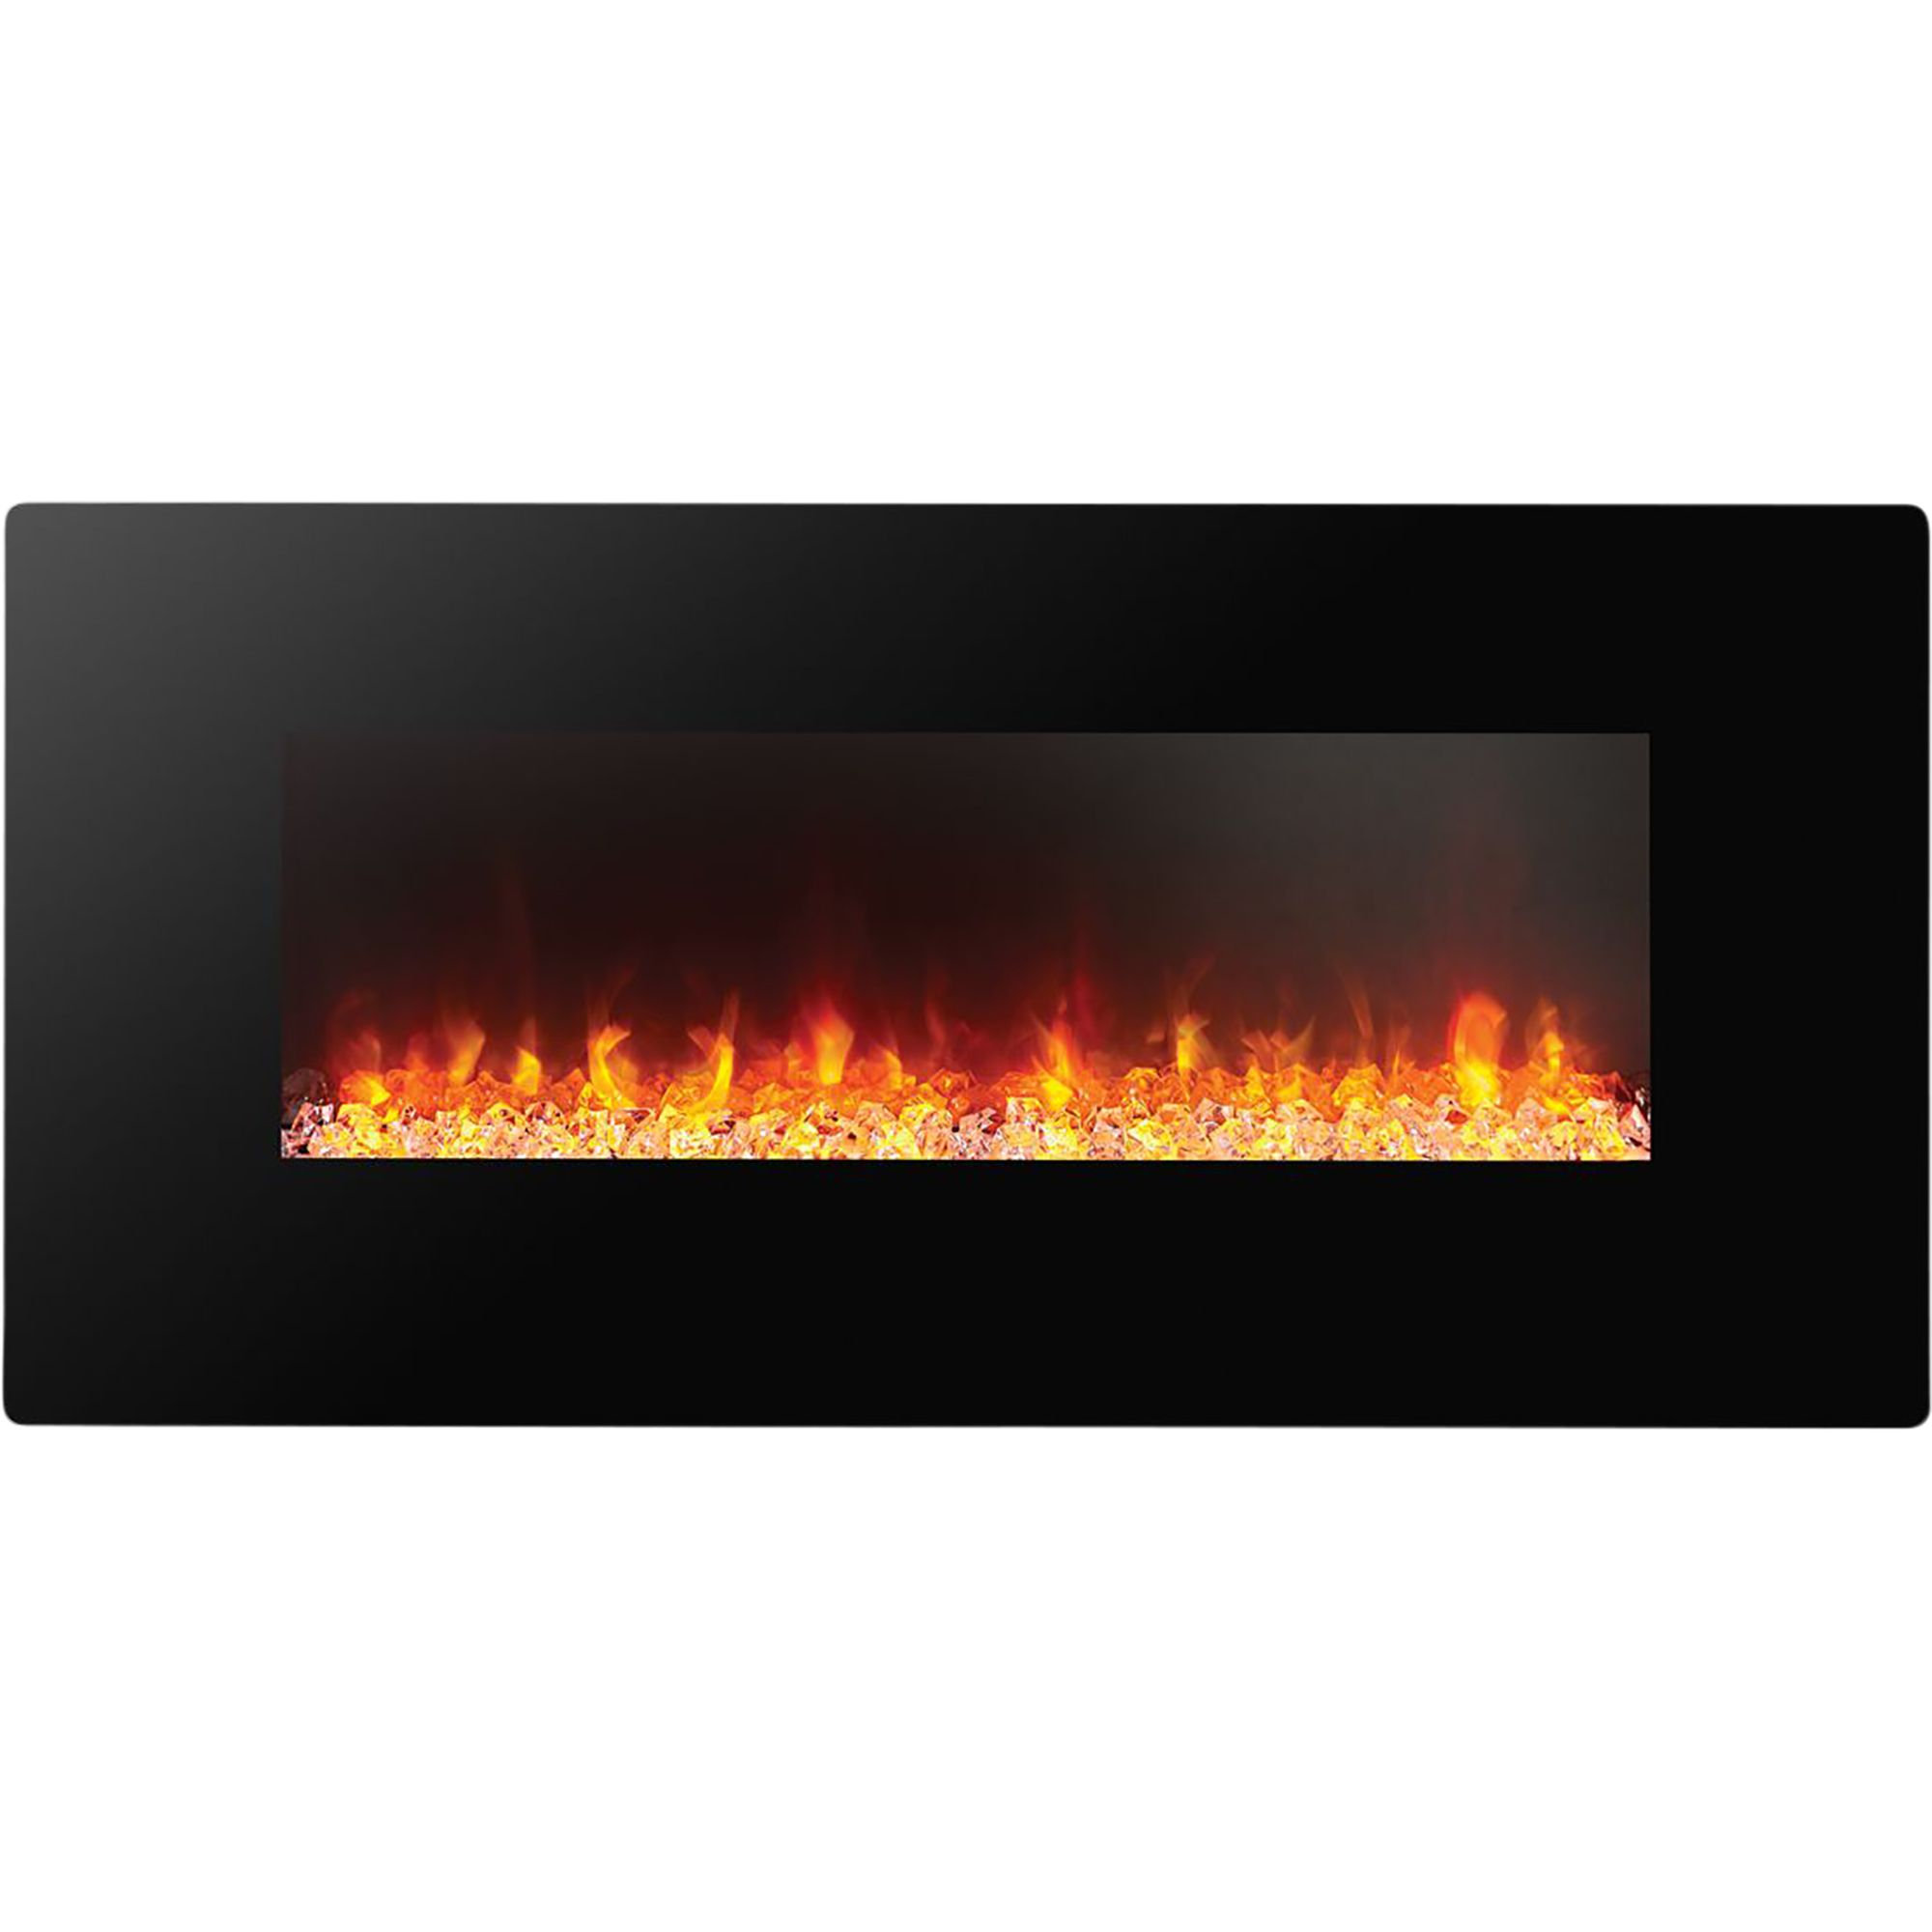 Focal Point Electric Fire: Focal Point Columbus Black Remote Control Electric Fire